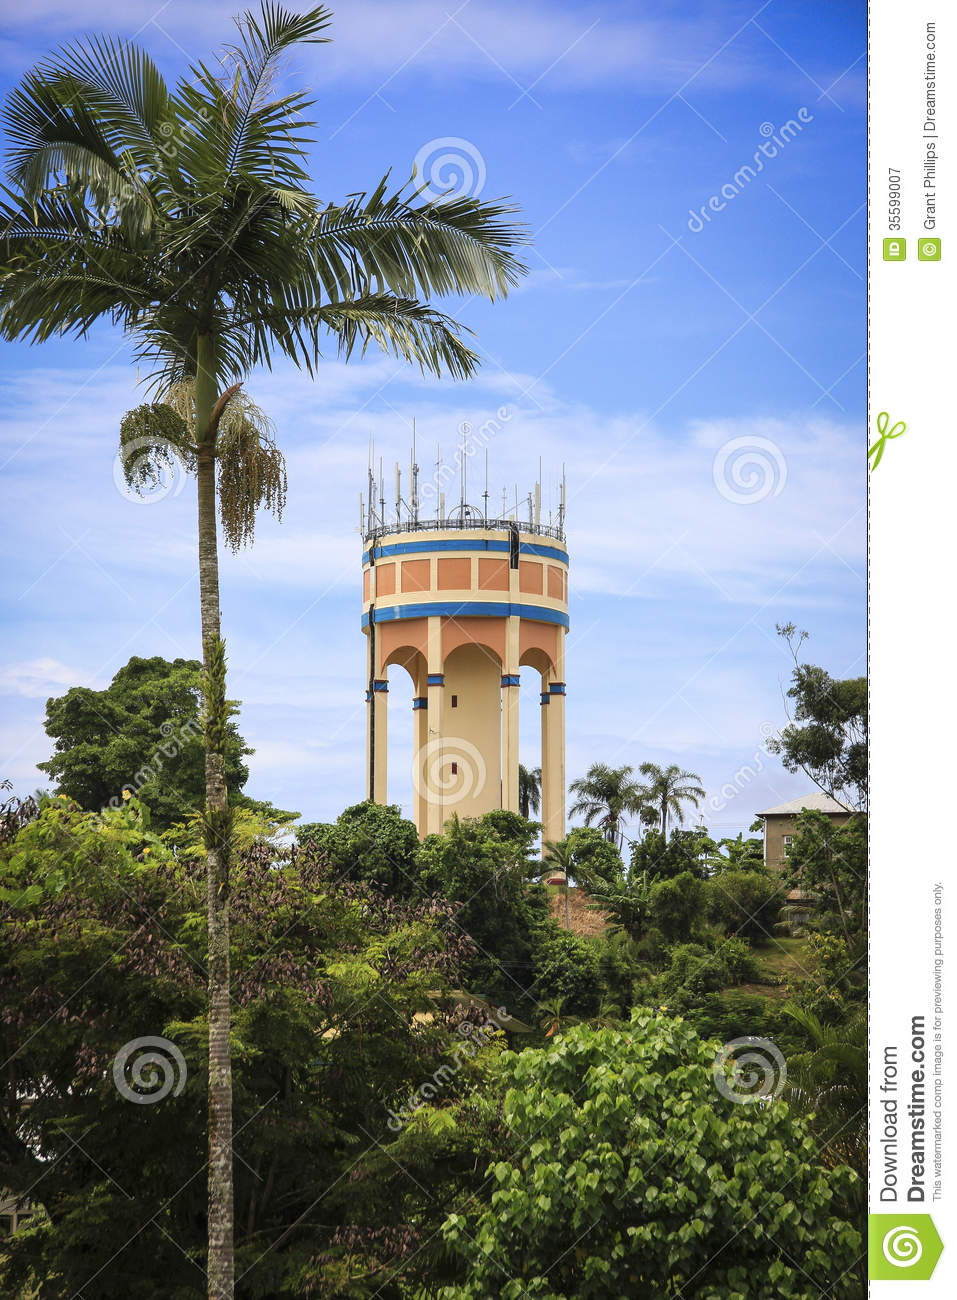 art deco water tower stock image  image of palm  tower